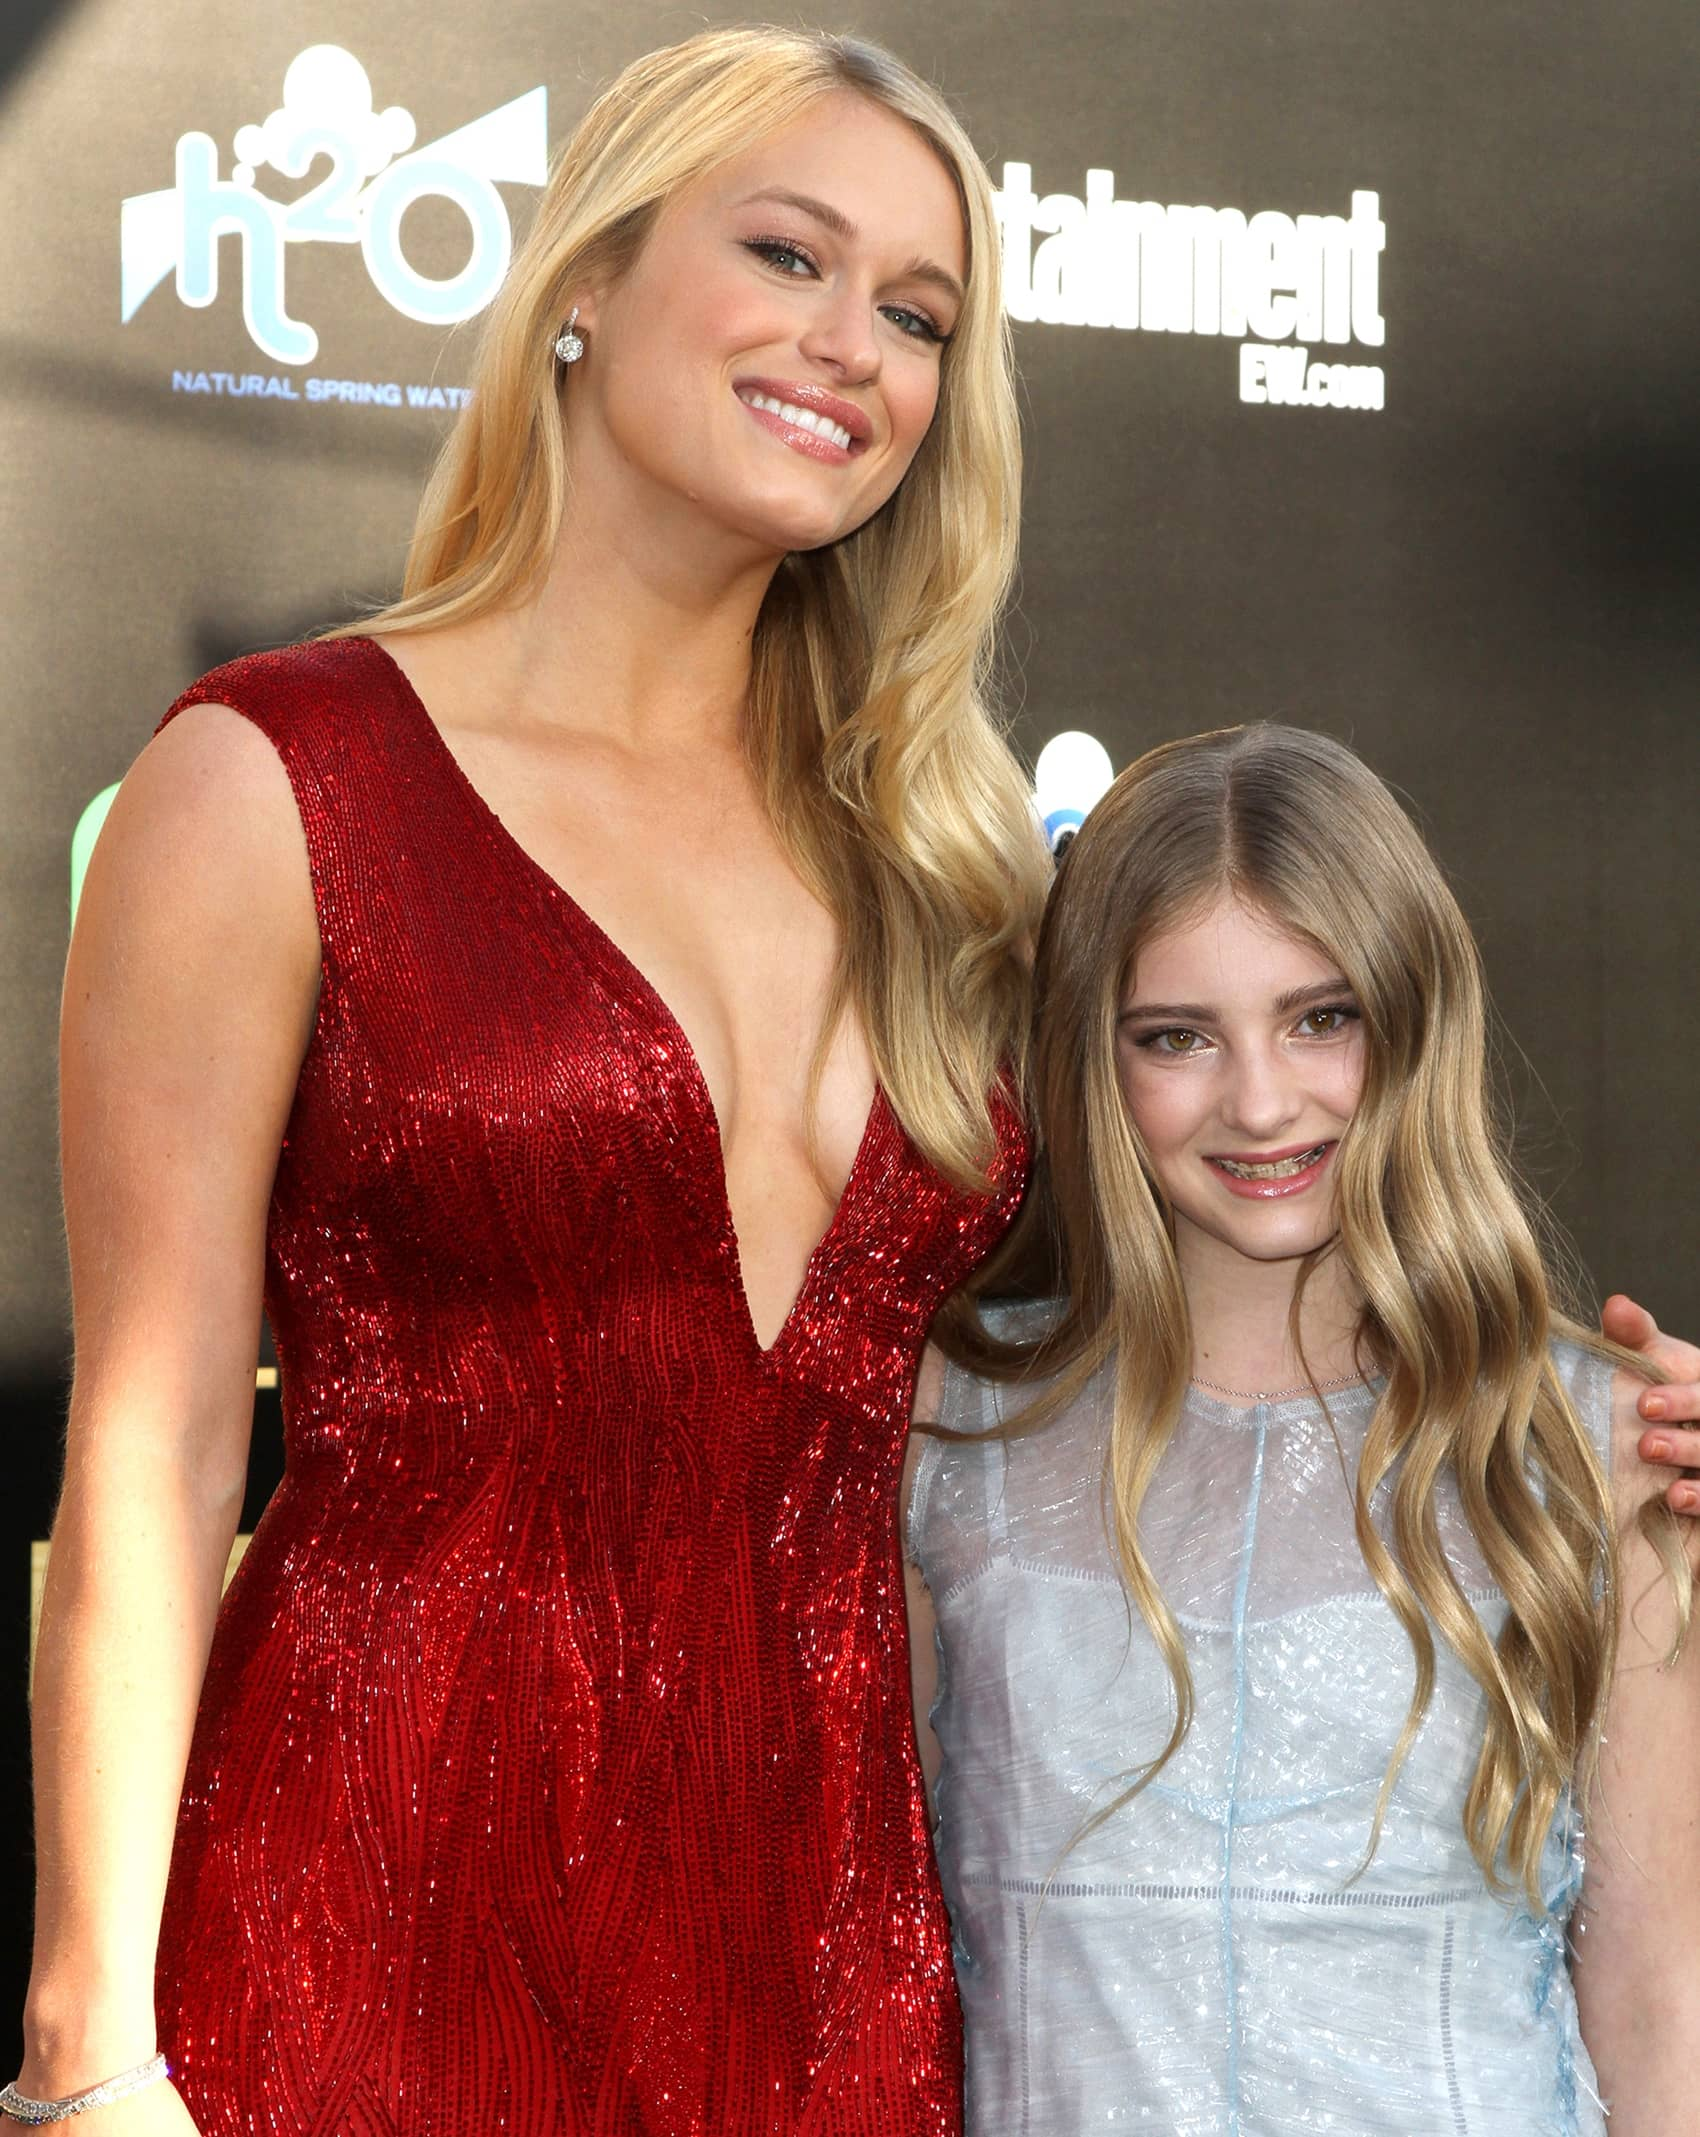 Leven Rambin and Willow Shields attend the premiere of The Hunger Games